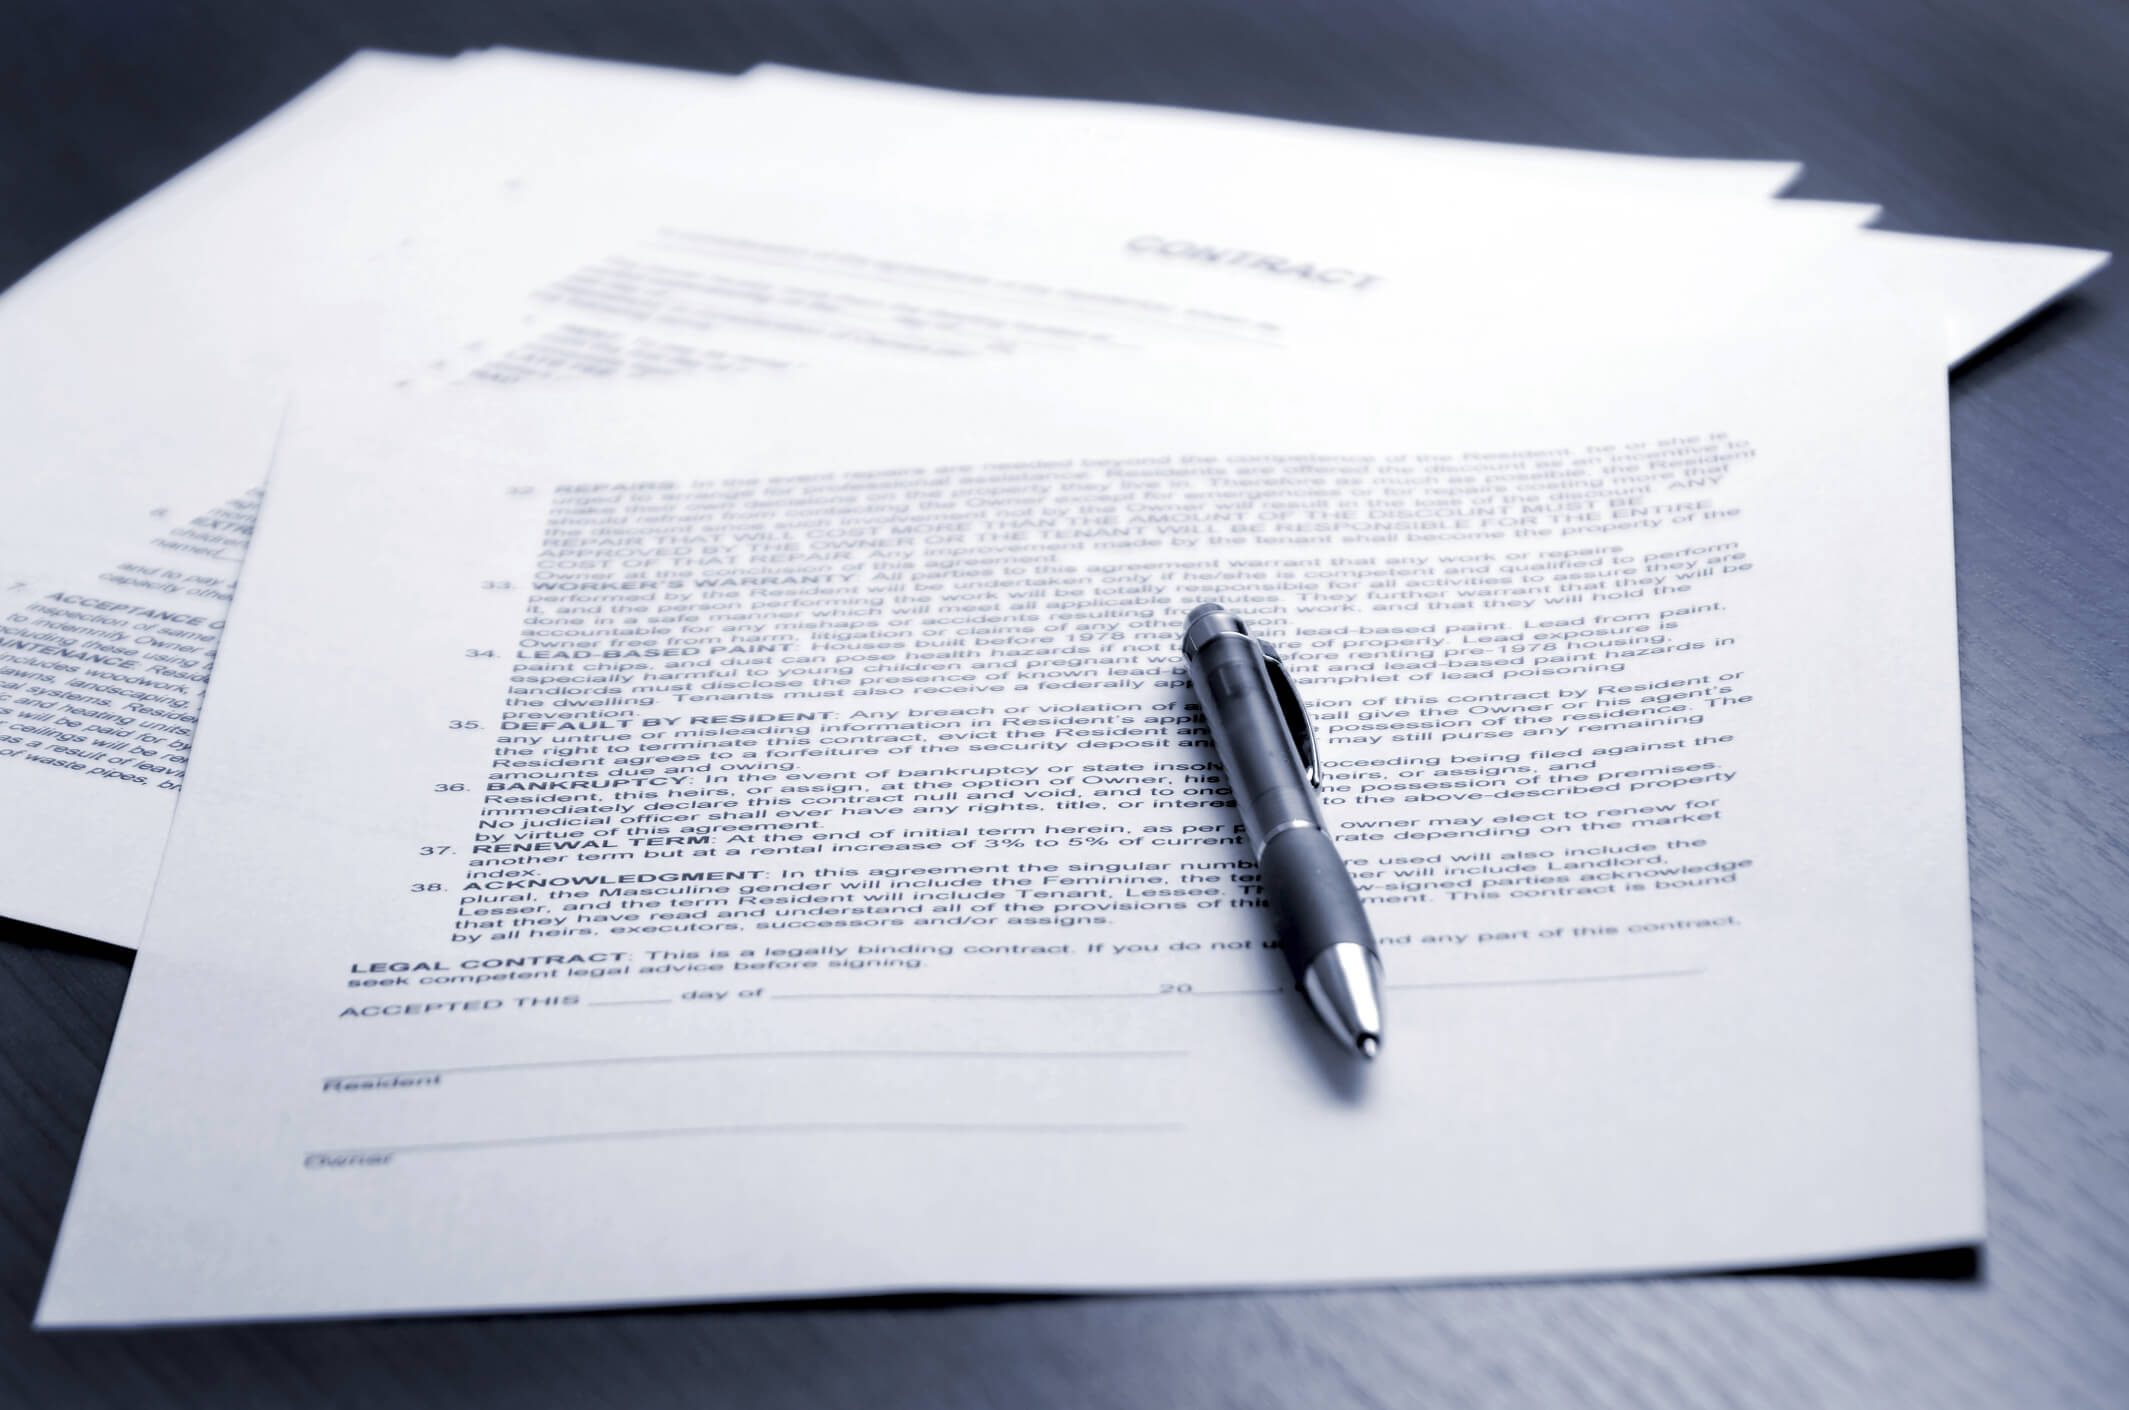 Legal documents every landlord needs - Rocket Lawyer